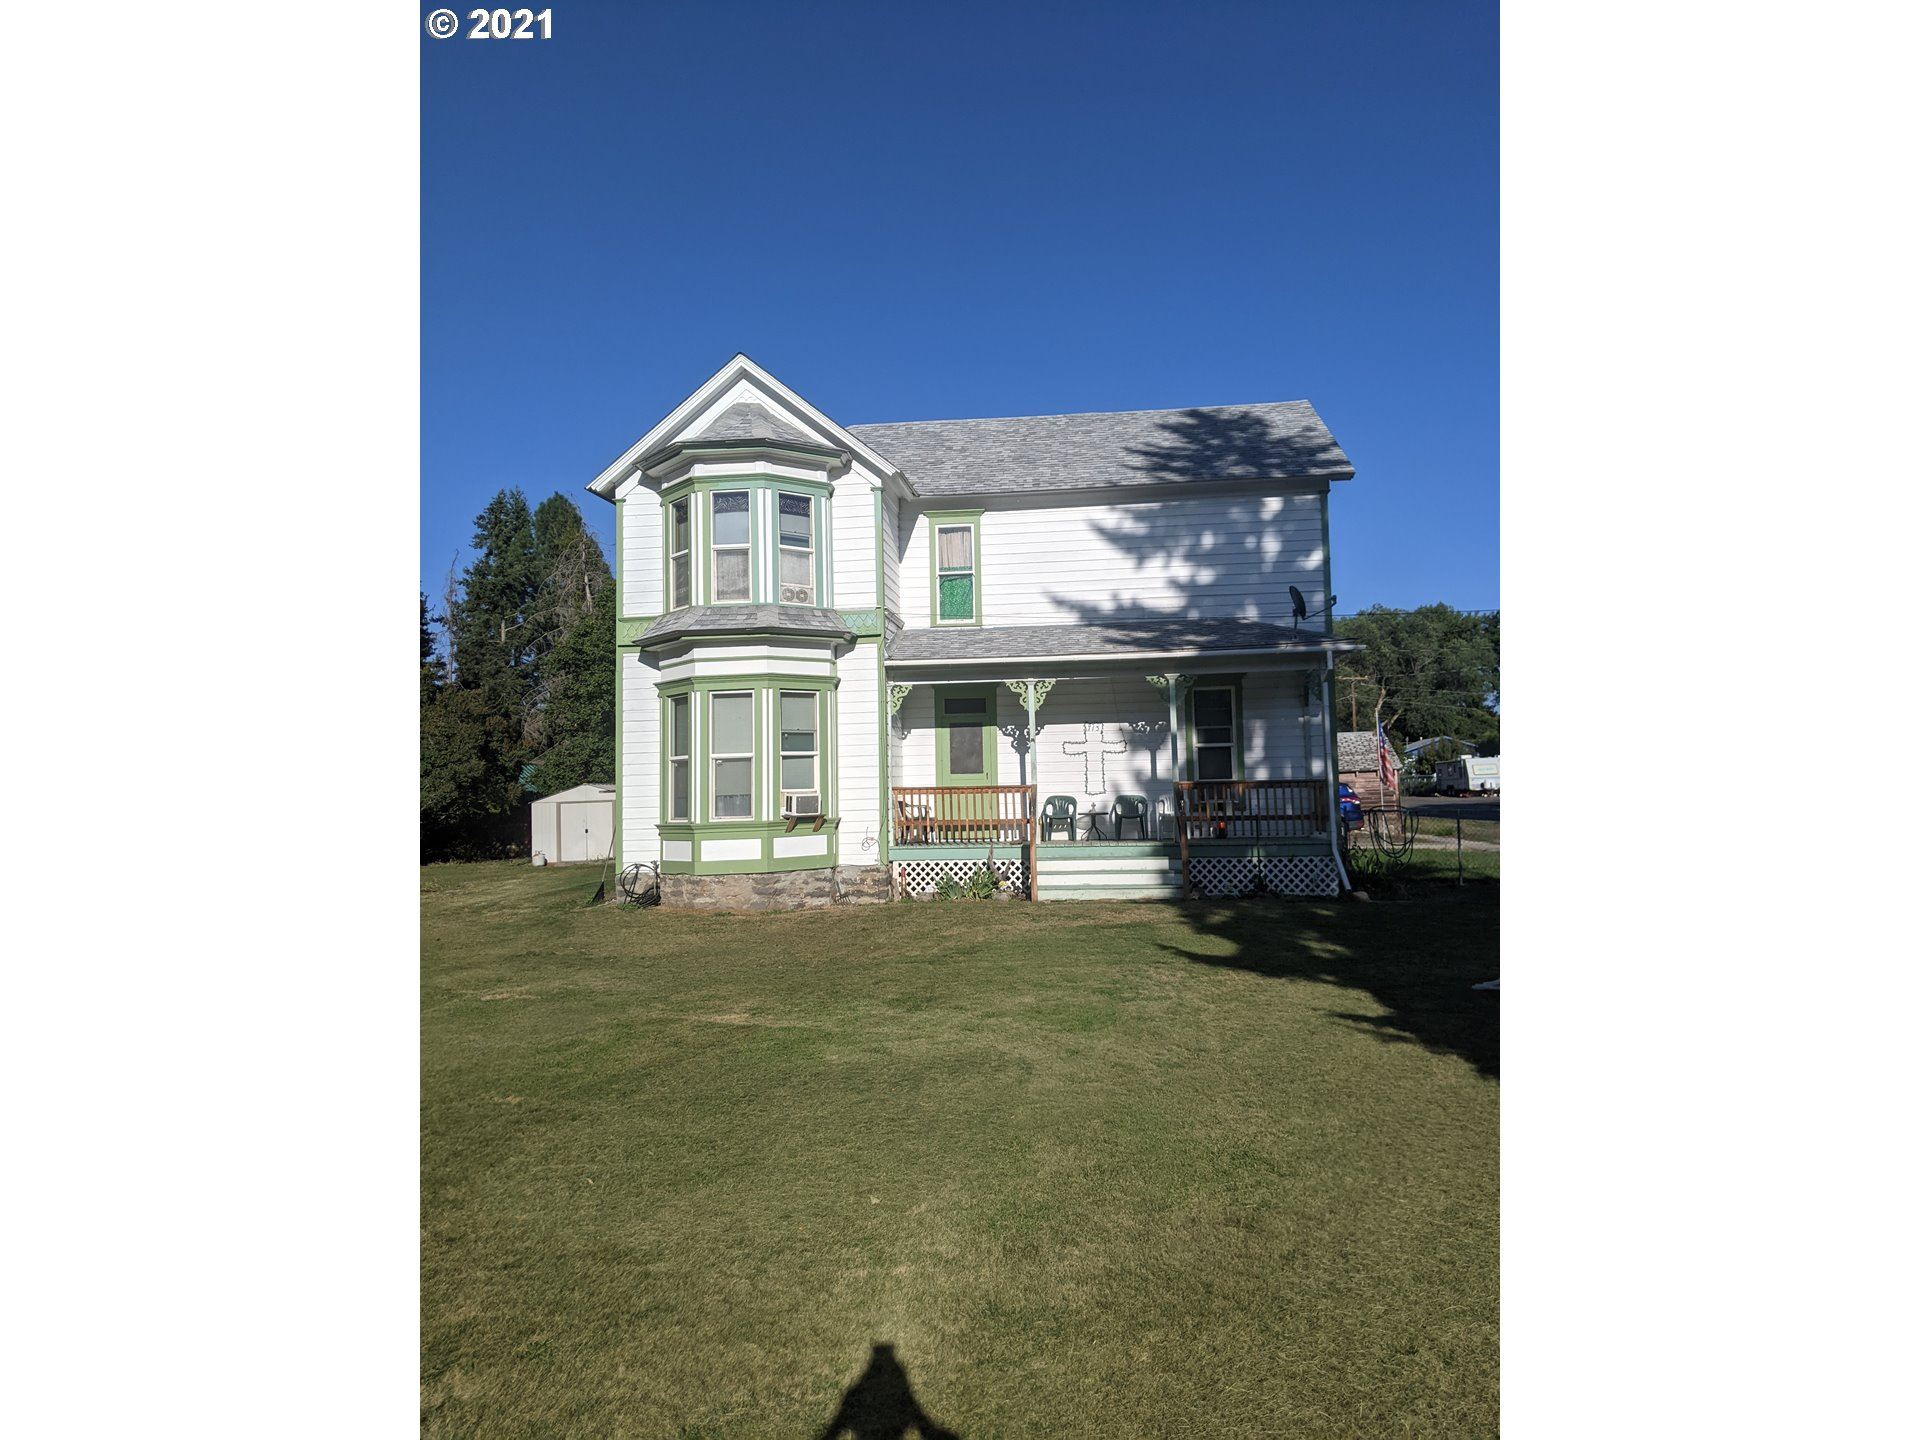 713 N COLLEGE ST, Union, OR 97883 - MLS#: 21355030